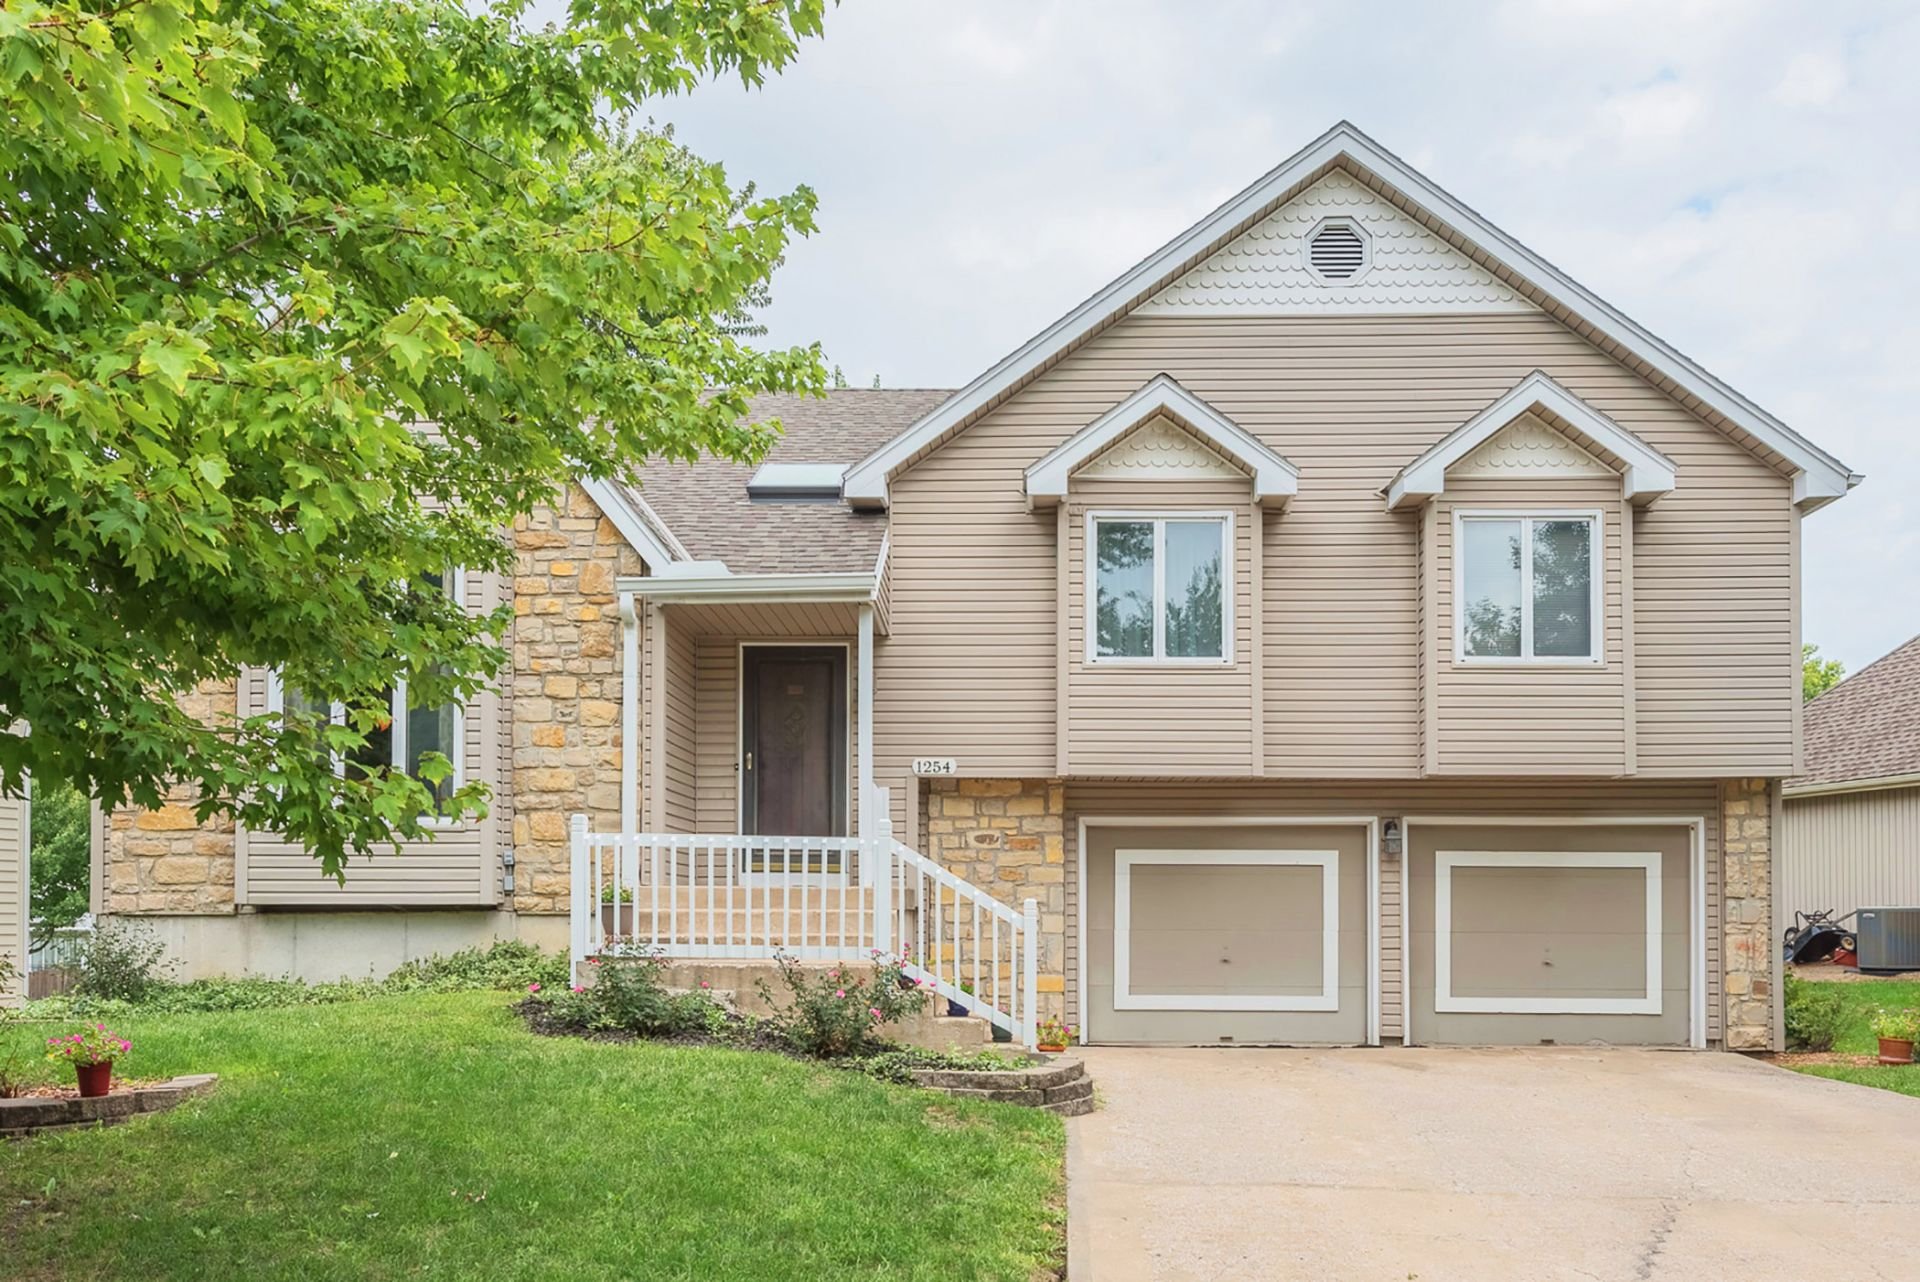 NEW ON THE MARKET in Olathe with First OPEN HOUSE!